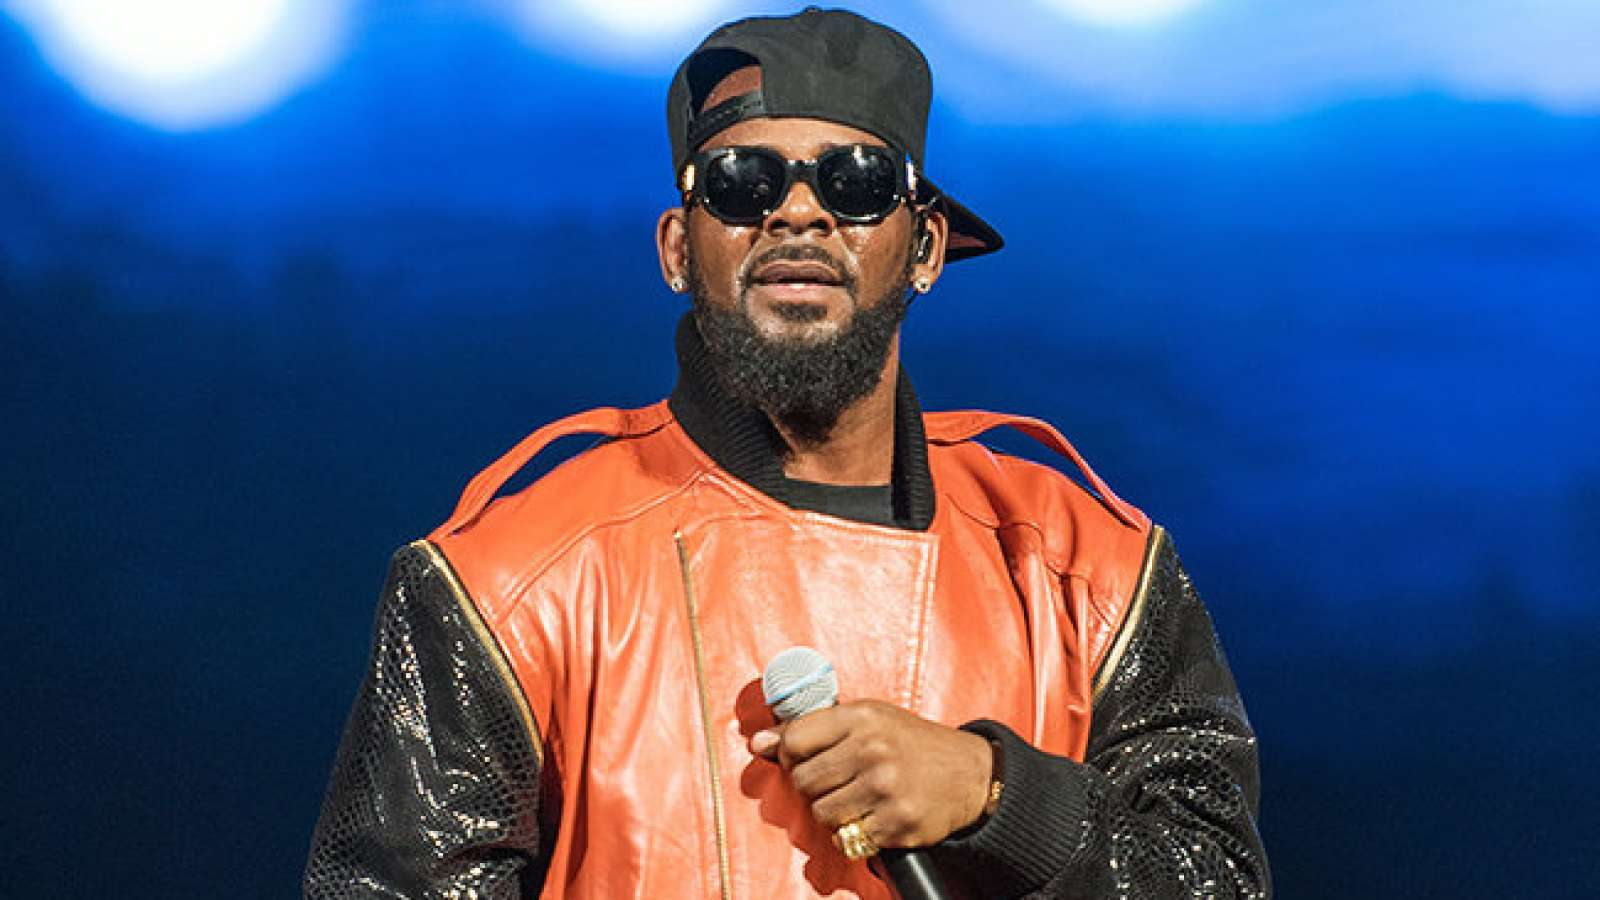 R Kelly Hair Style: R. Kelly Admitted He Did It In New Song...Now What